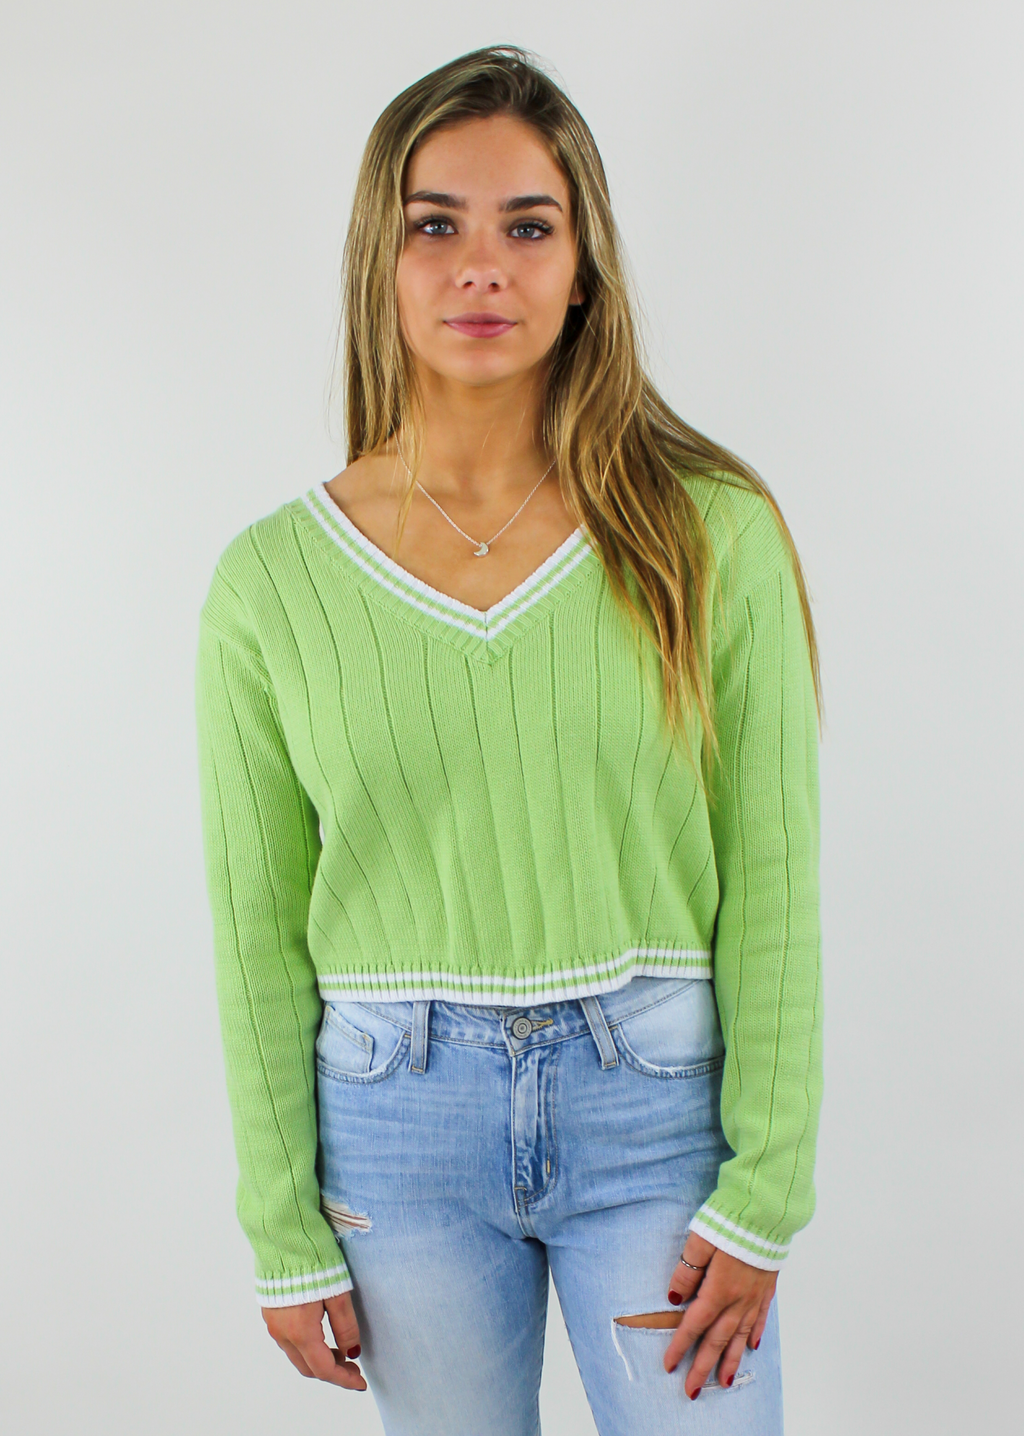 Light Me Up Sweater ★ Lime Green